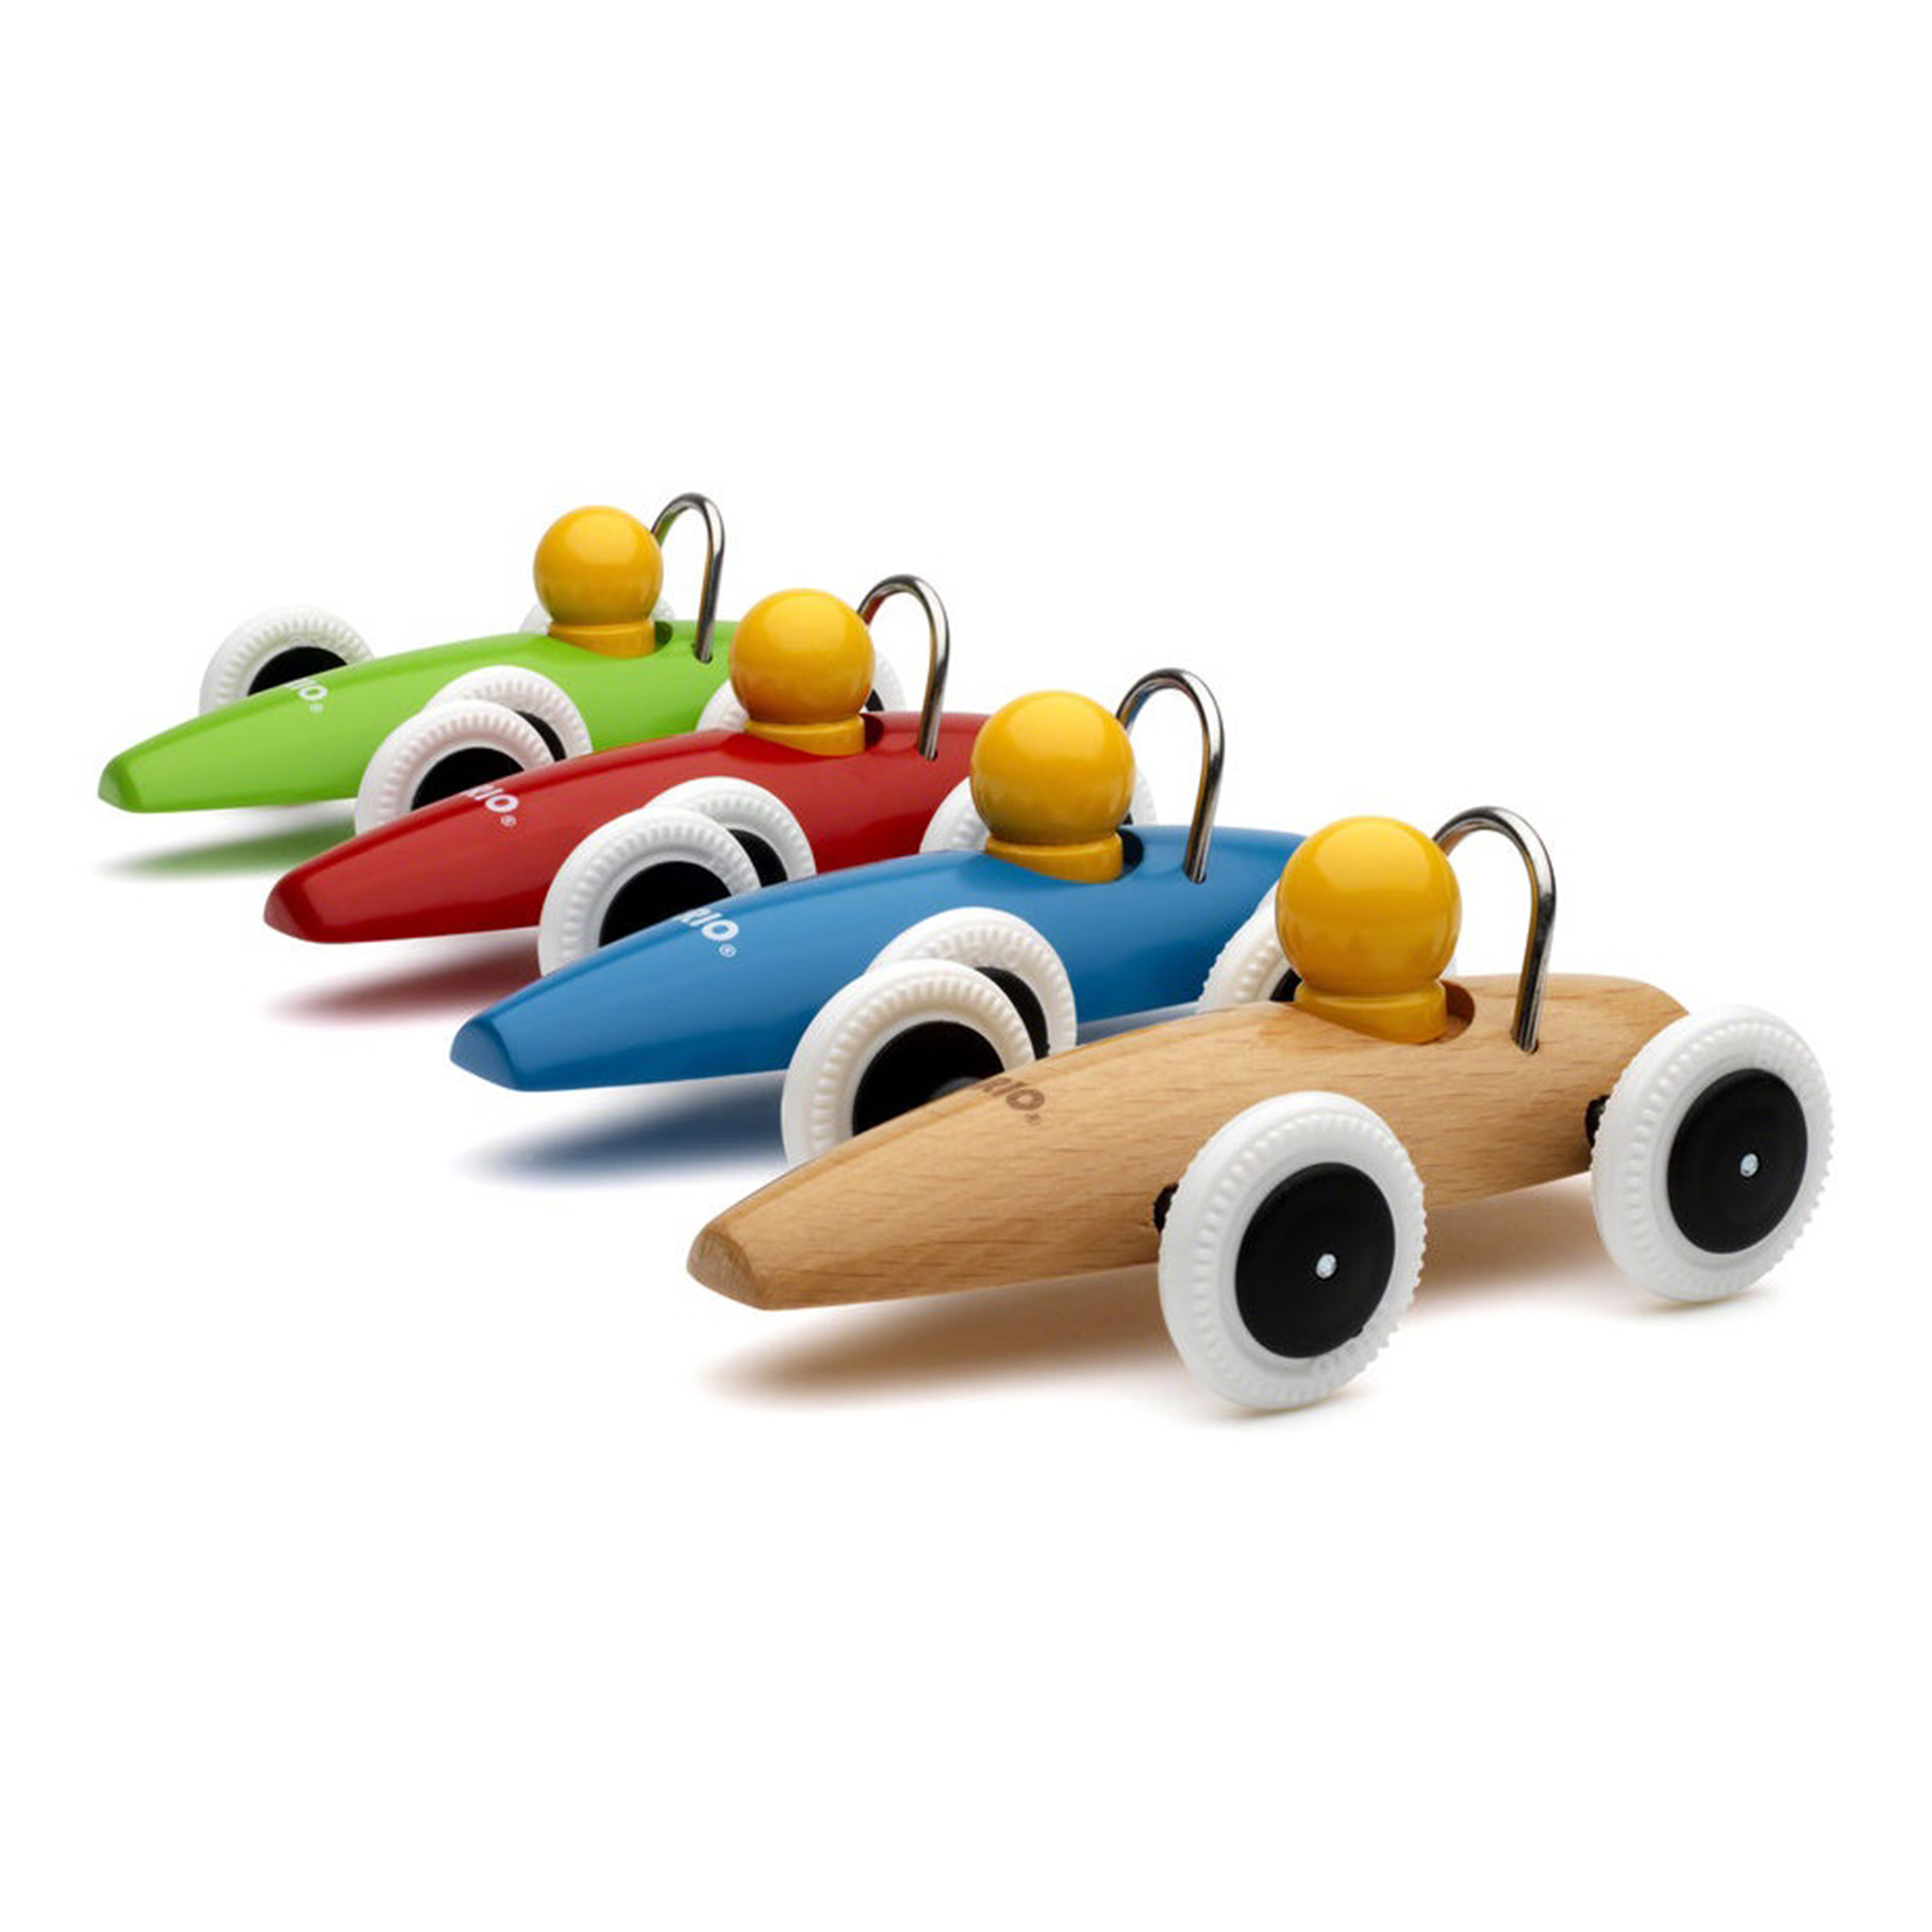 BRIO Race Car Assortment